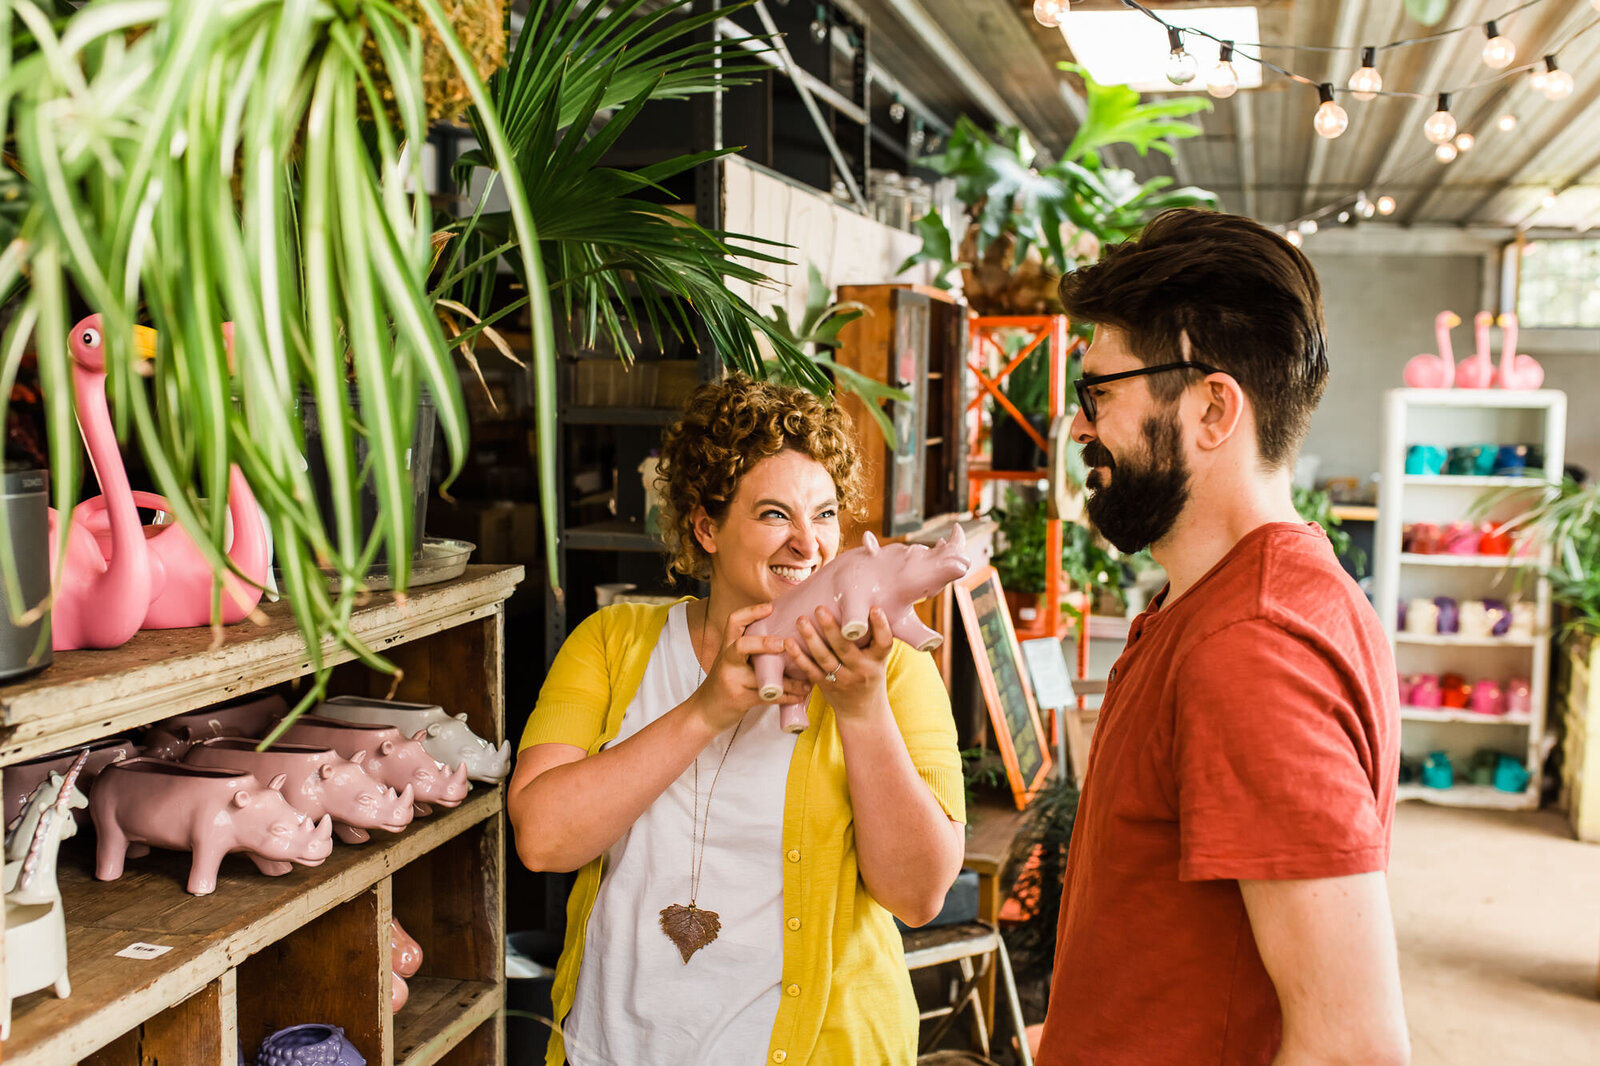 Funny candid photo of an engaged couple shopping for plants together at Flowers and Weeds in St. Louis